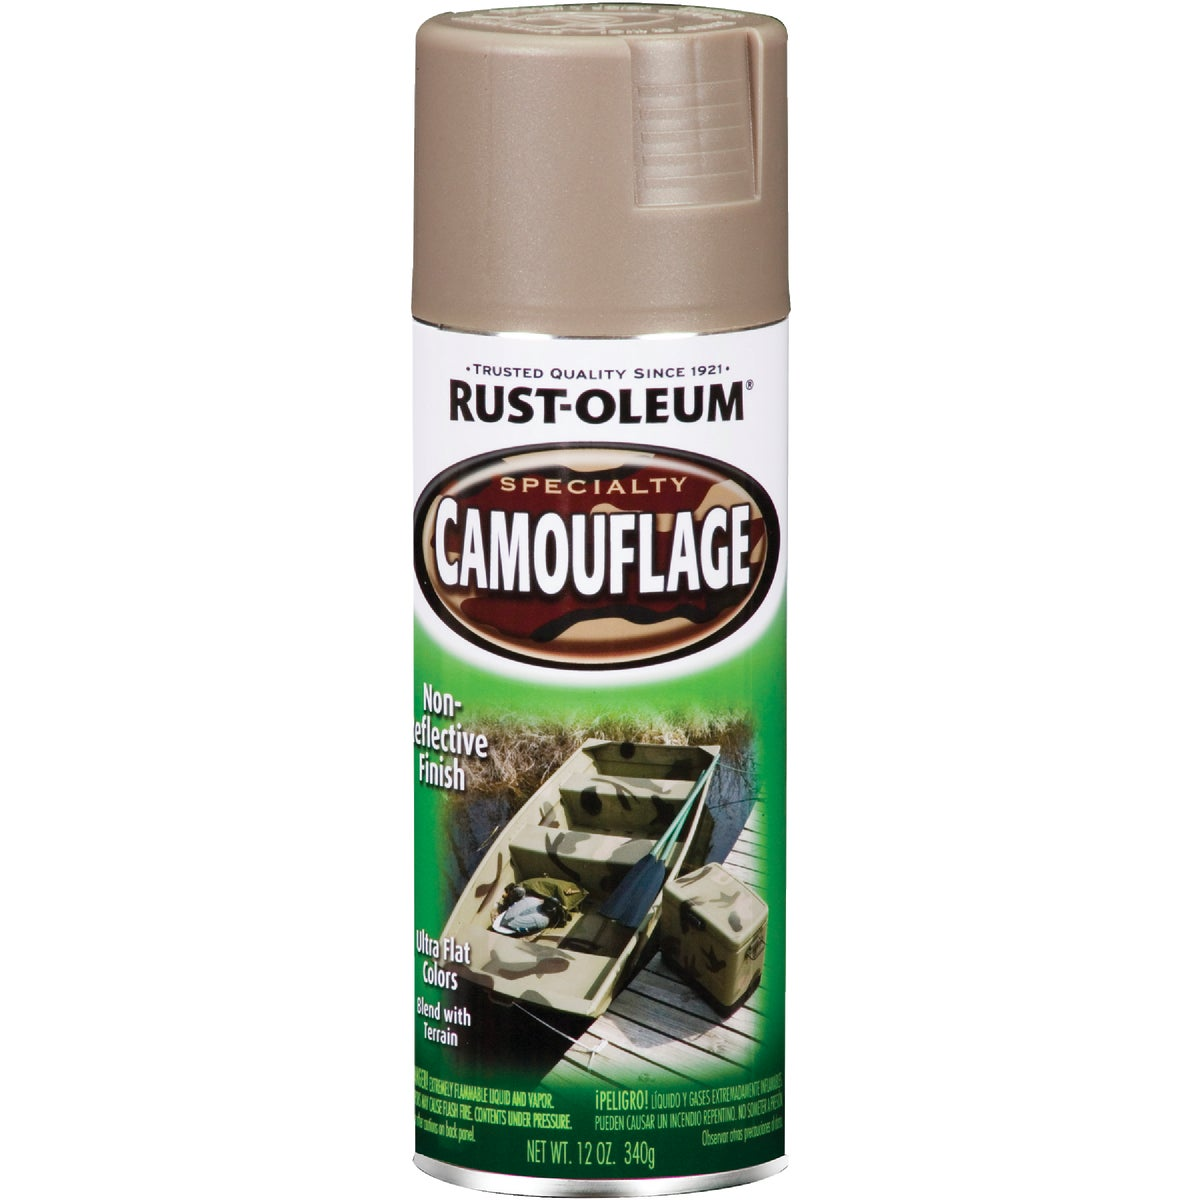 KHAKI CAMO SPRAY PAINT - 1917-830 by Rustoleum